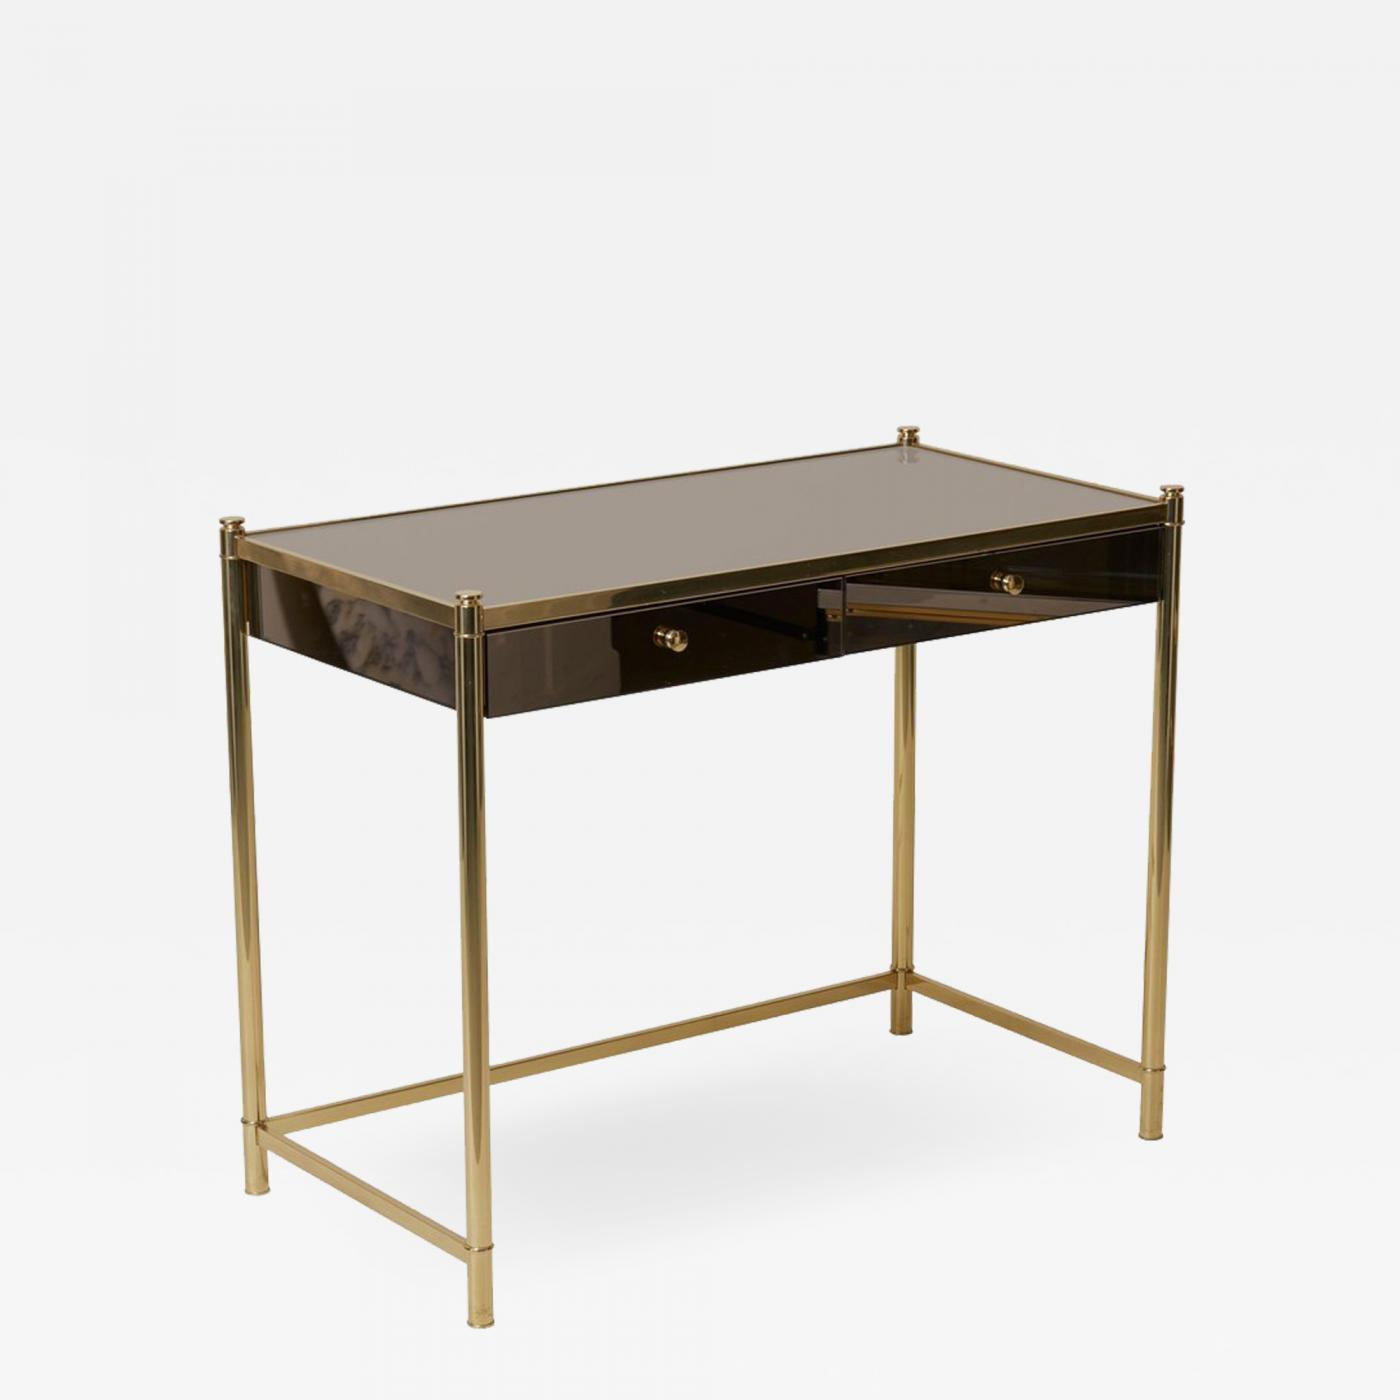 Dressing Maison Maison Jansen Beautiful Brass And Mirror Dressing Or Vanity Table In The Maison Jansen Manner